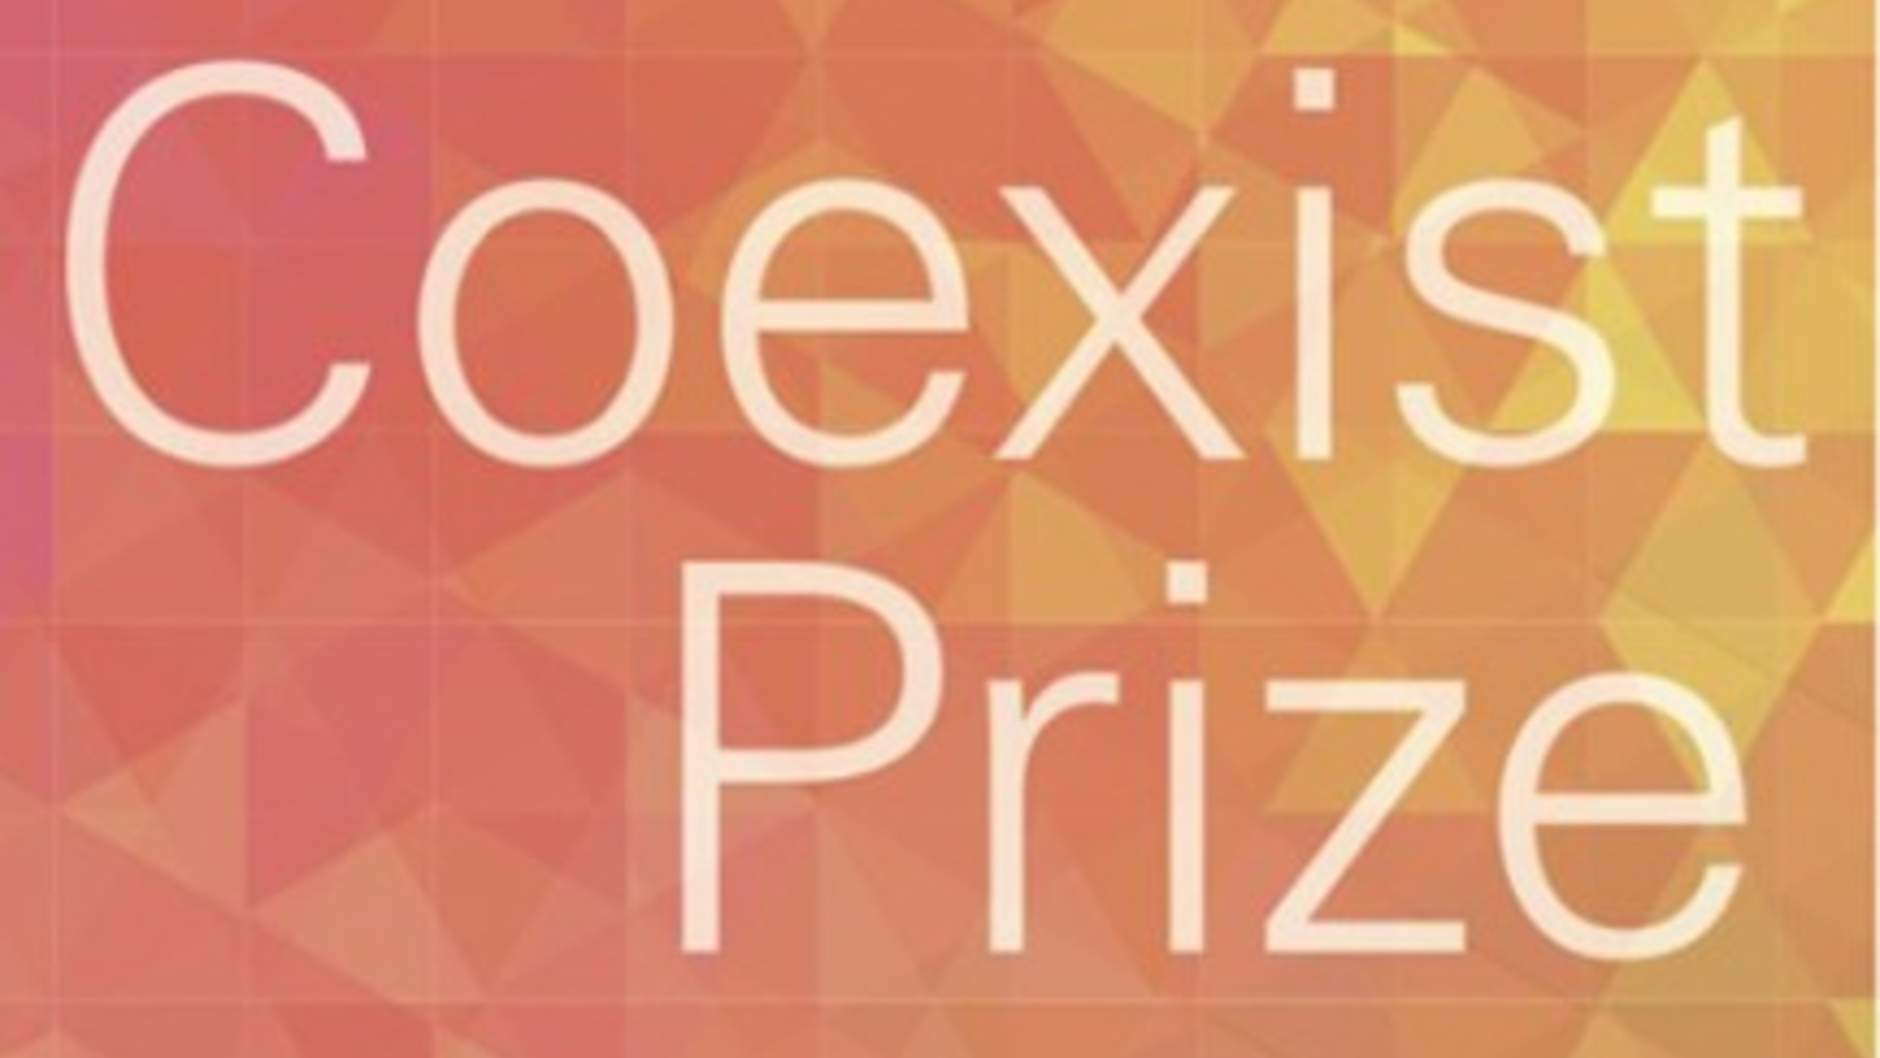 Coexist Prize finalists